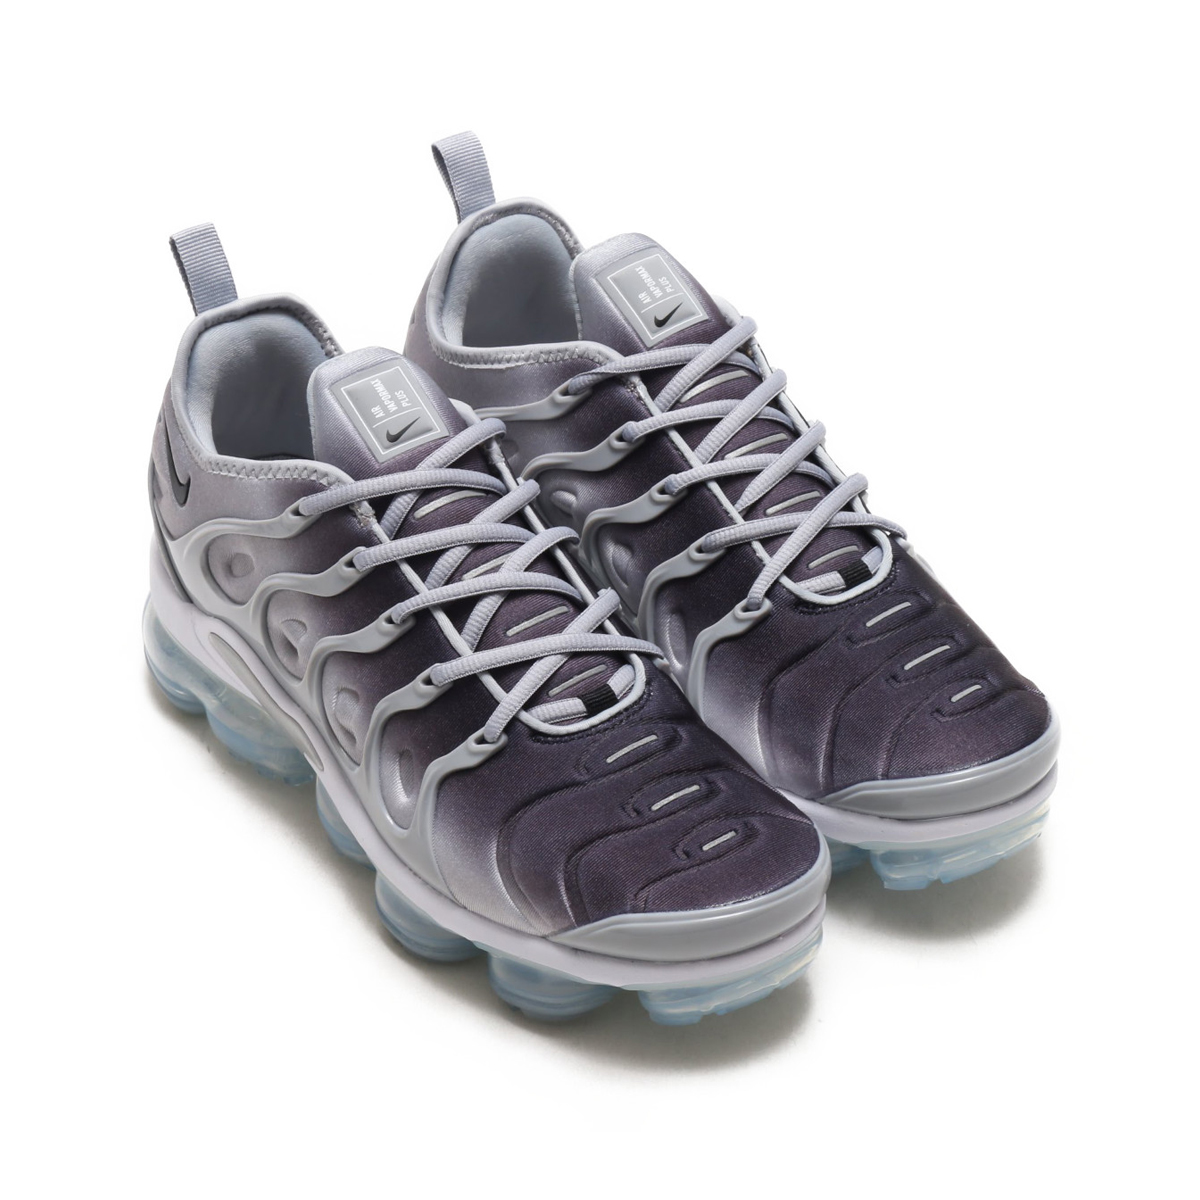 3c38528e0 NIKE AIR VAPORMAX PLUS (Nike air vapor max plus) (WOLF GREY BLACK-WHITE)  18SU-S